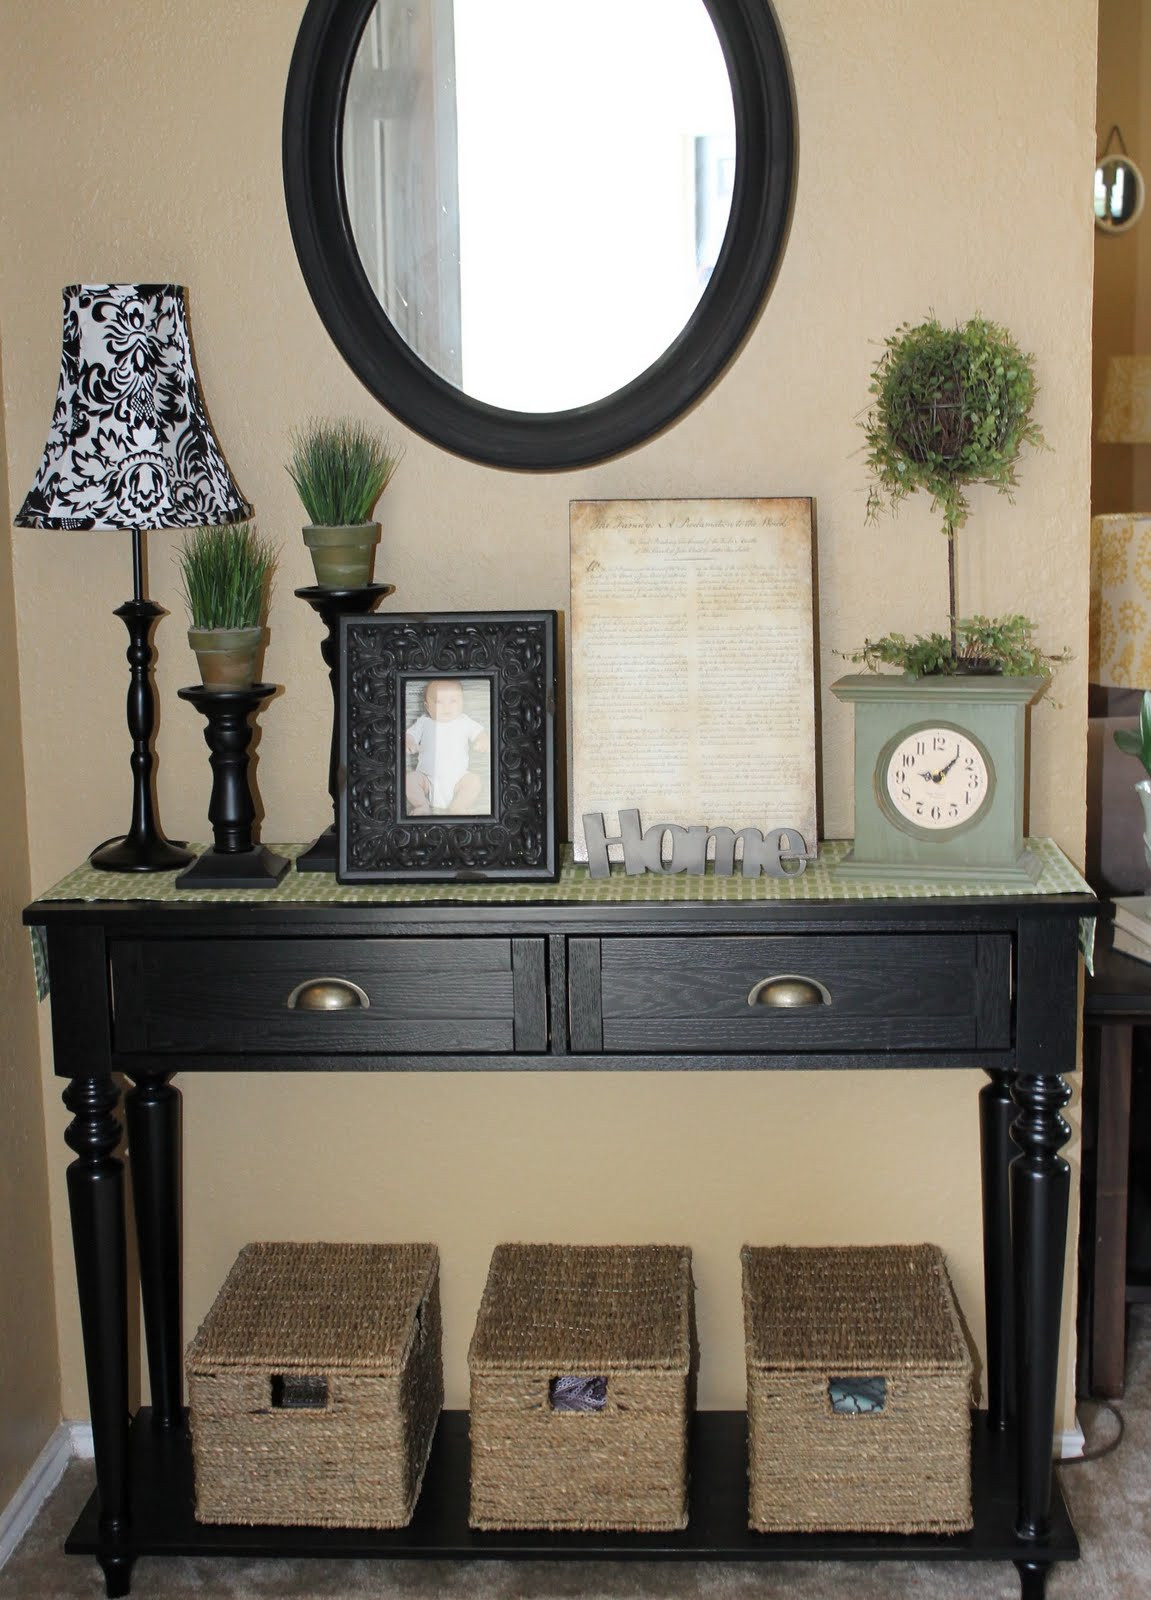 Best ideas about Entrance Table Ideas . Save or Pin The Walkers Entryway table dilemma Now.